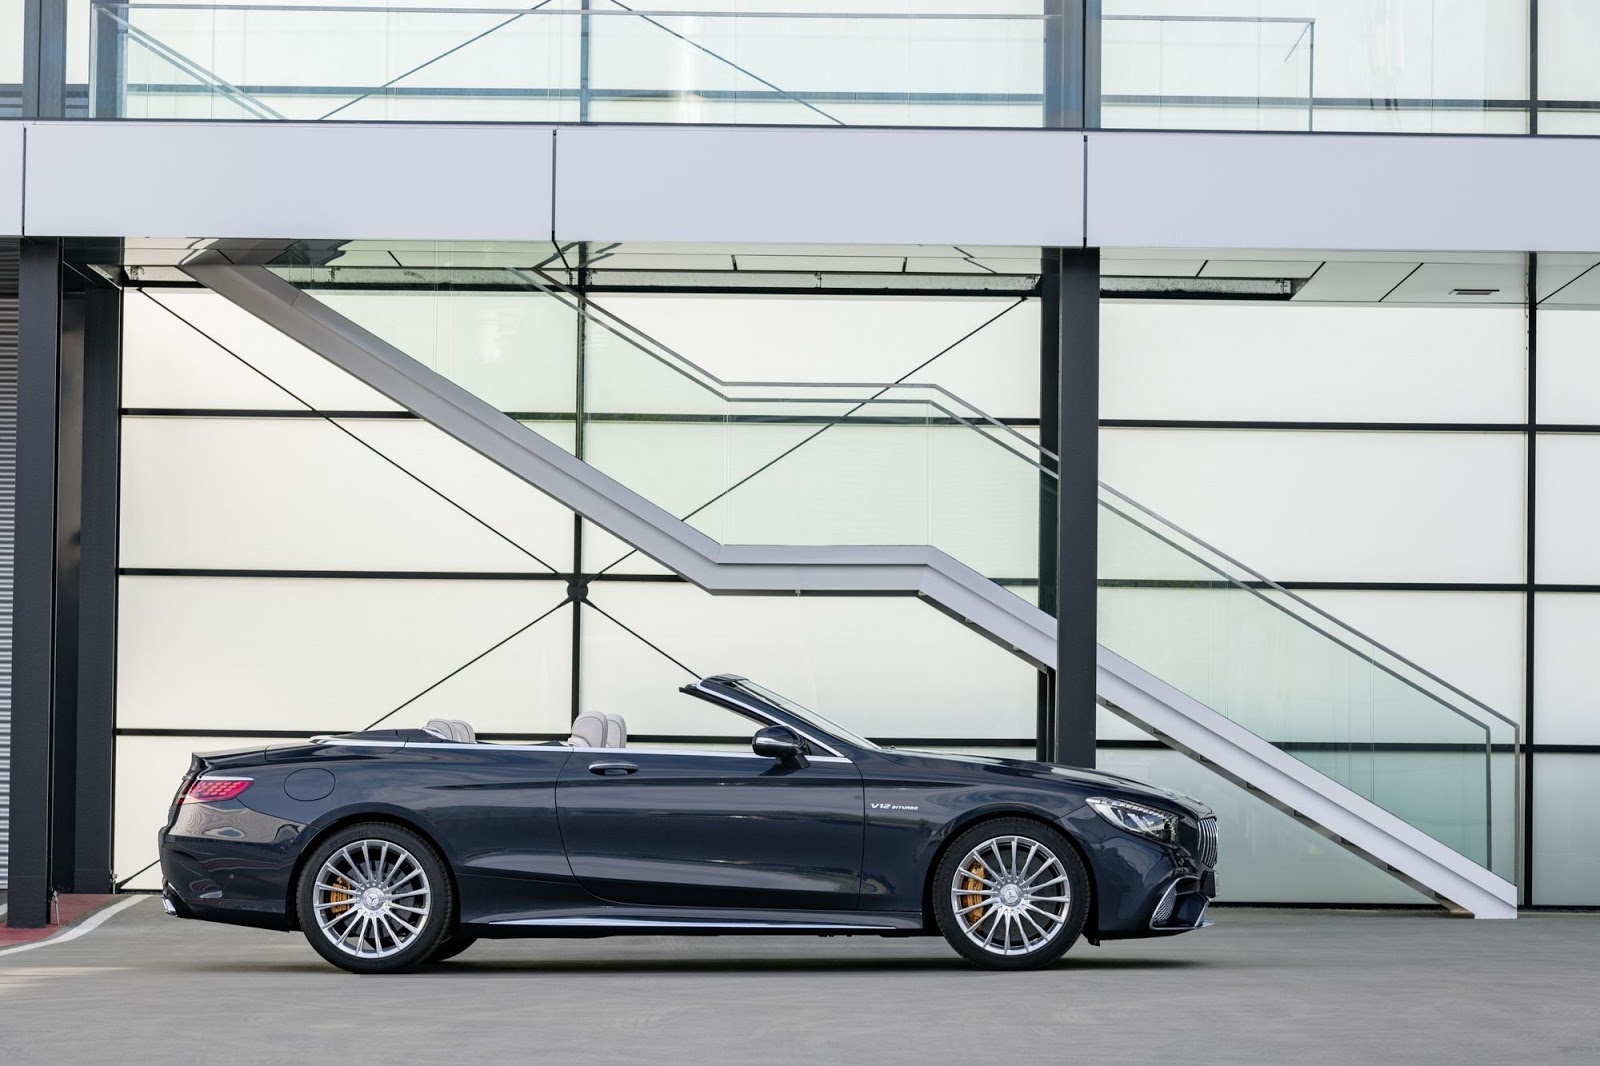 2018-Mercedes-AMG-S63-S65-Coupe-Cabriolet-55.JPG